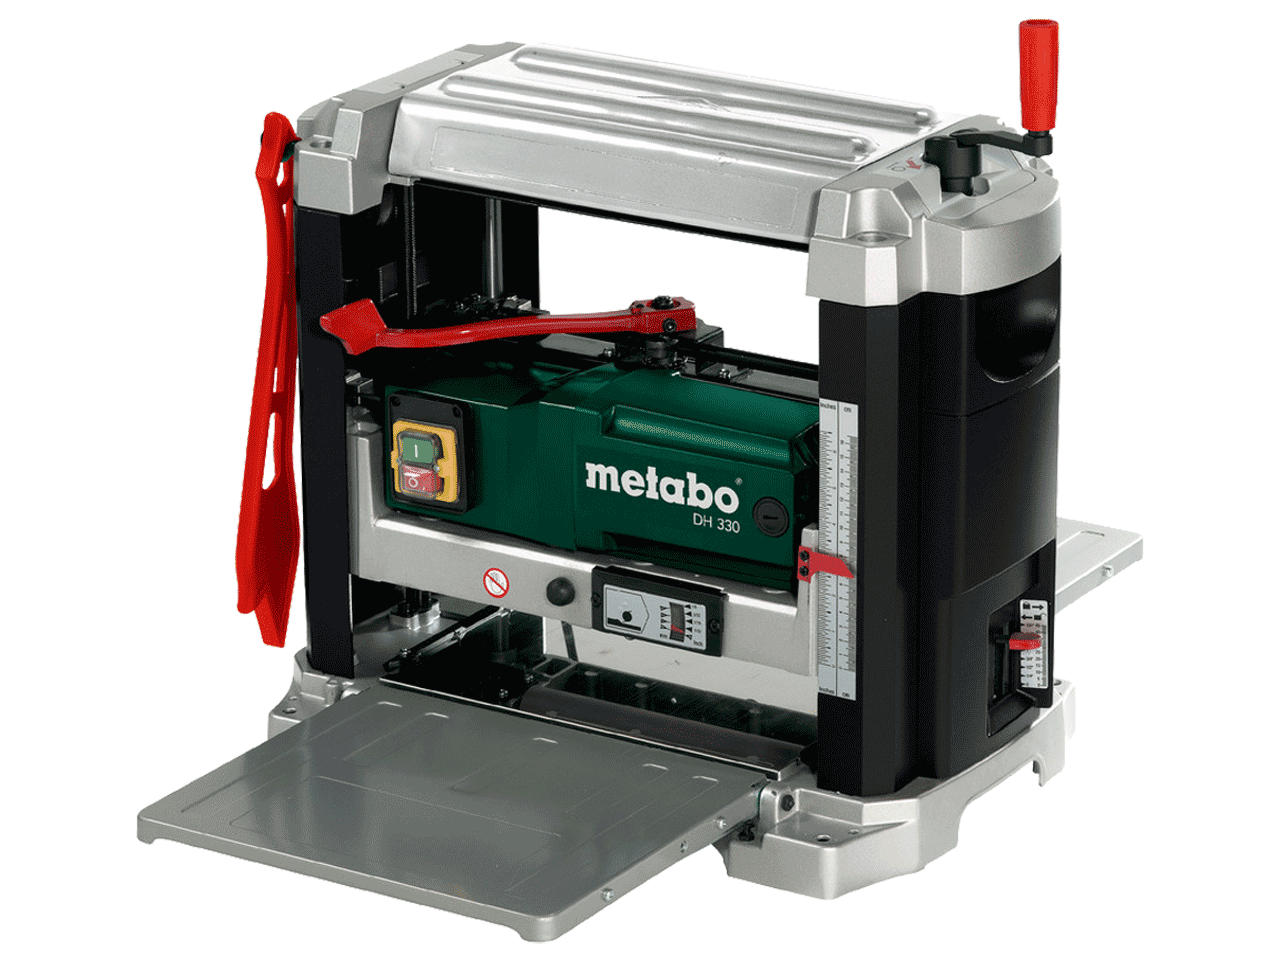 Metabo_DH330v2.png